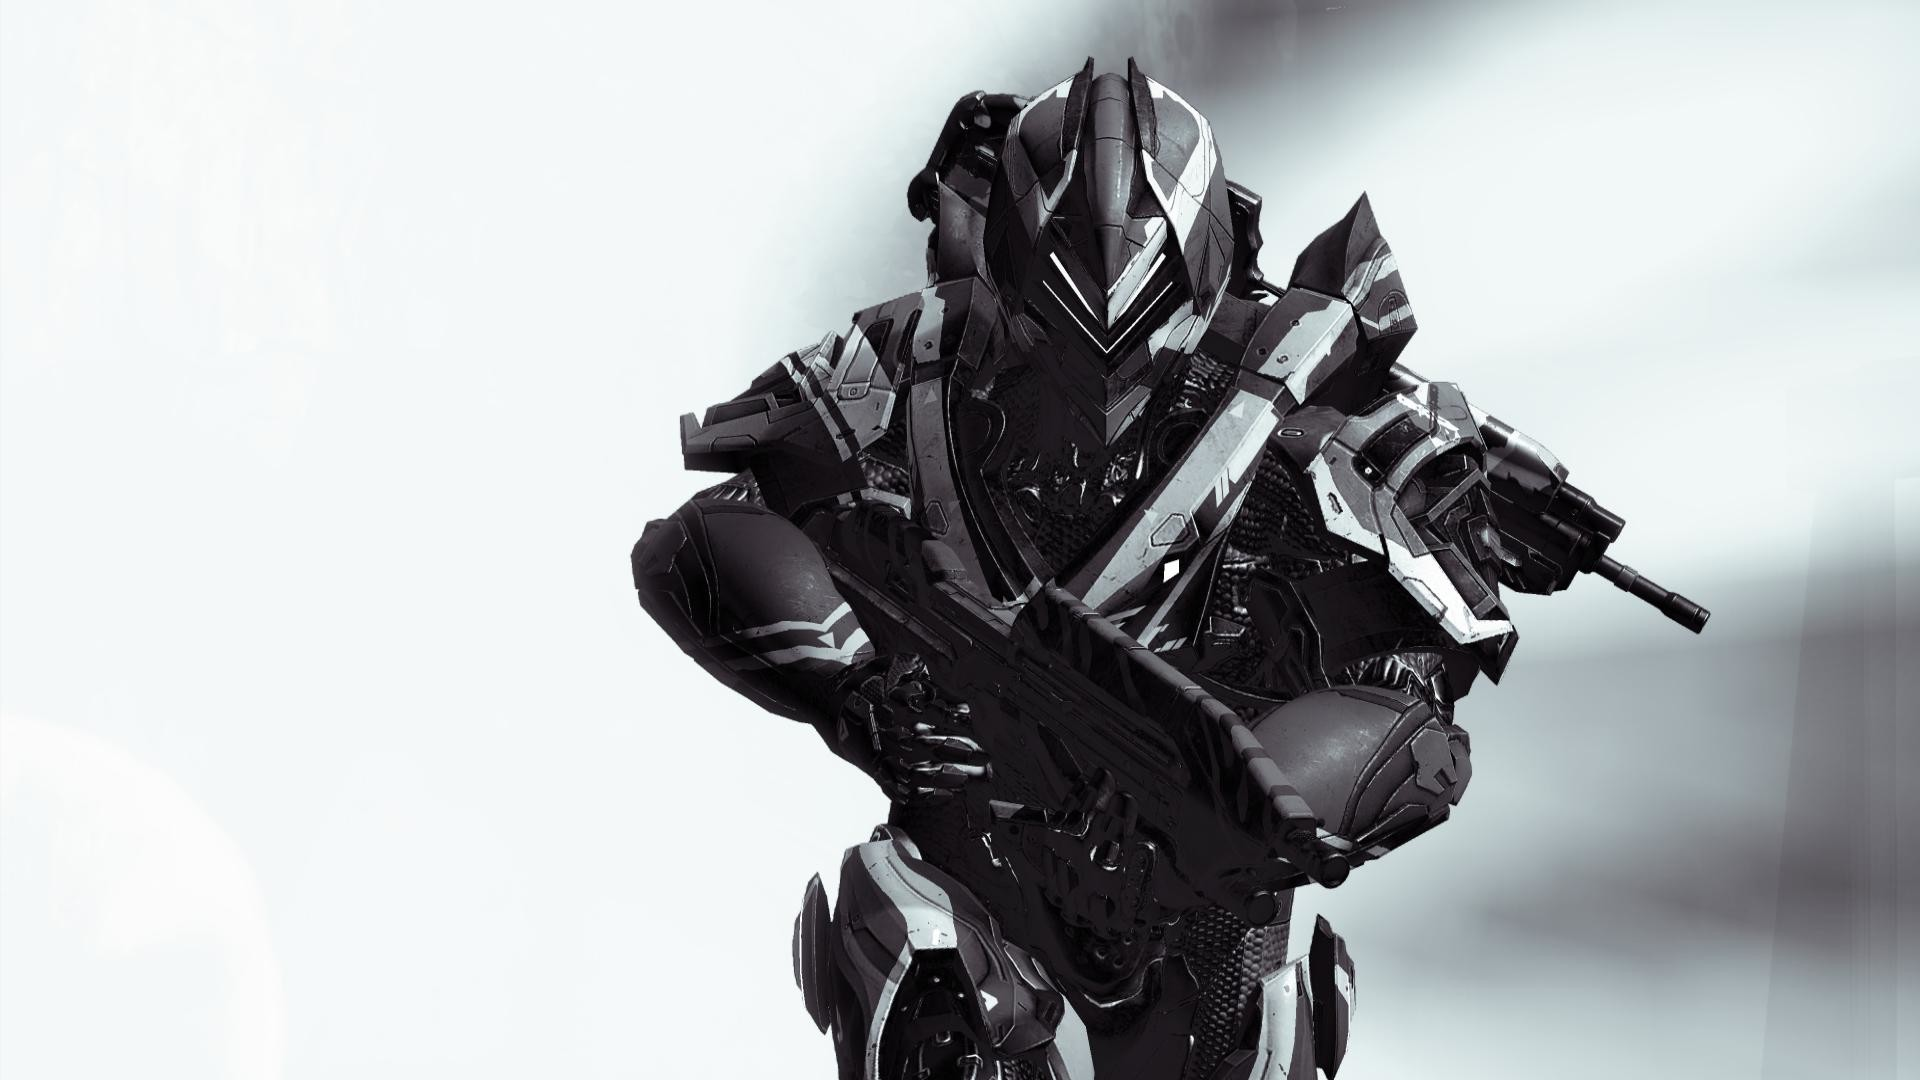 Awesome Halo Wallpapers 51 Images